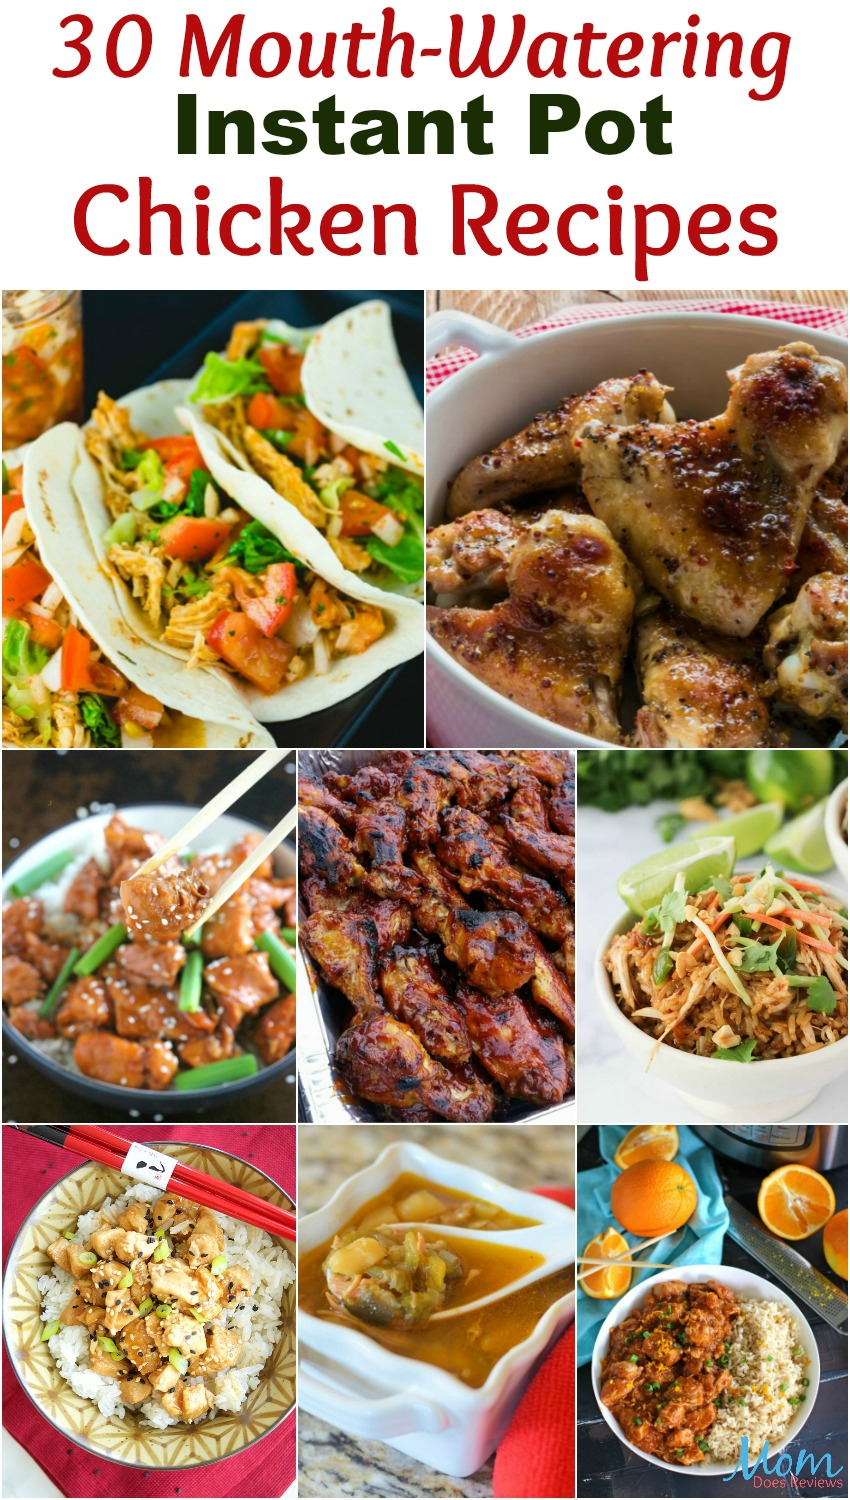 30 Mouth-Watering Instant Pot Chicken Recipes